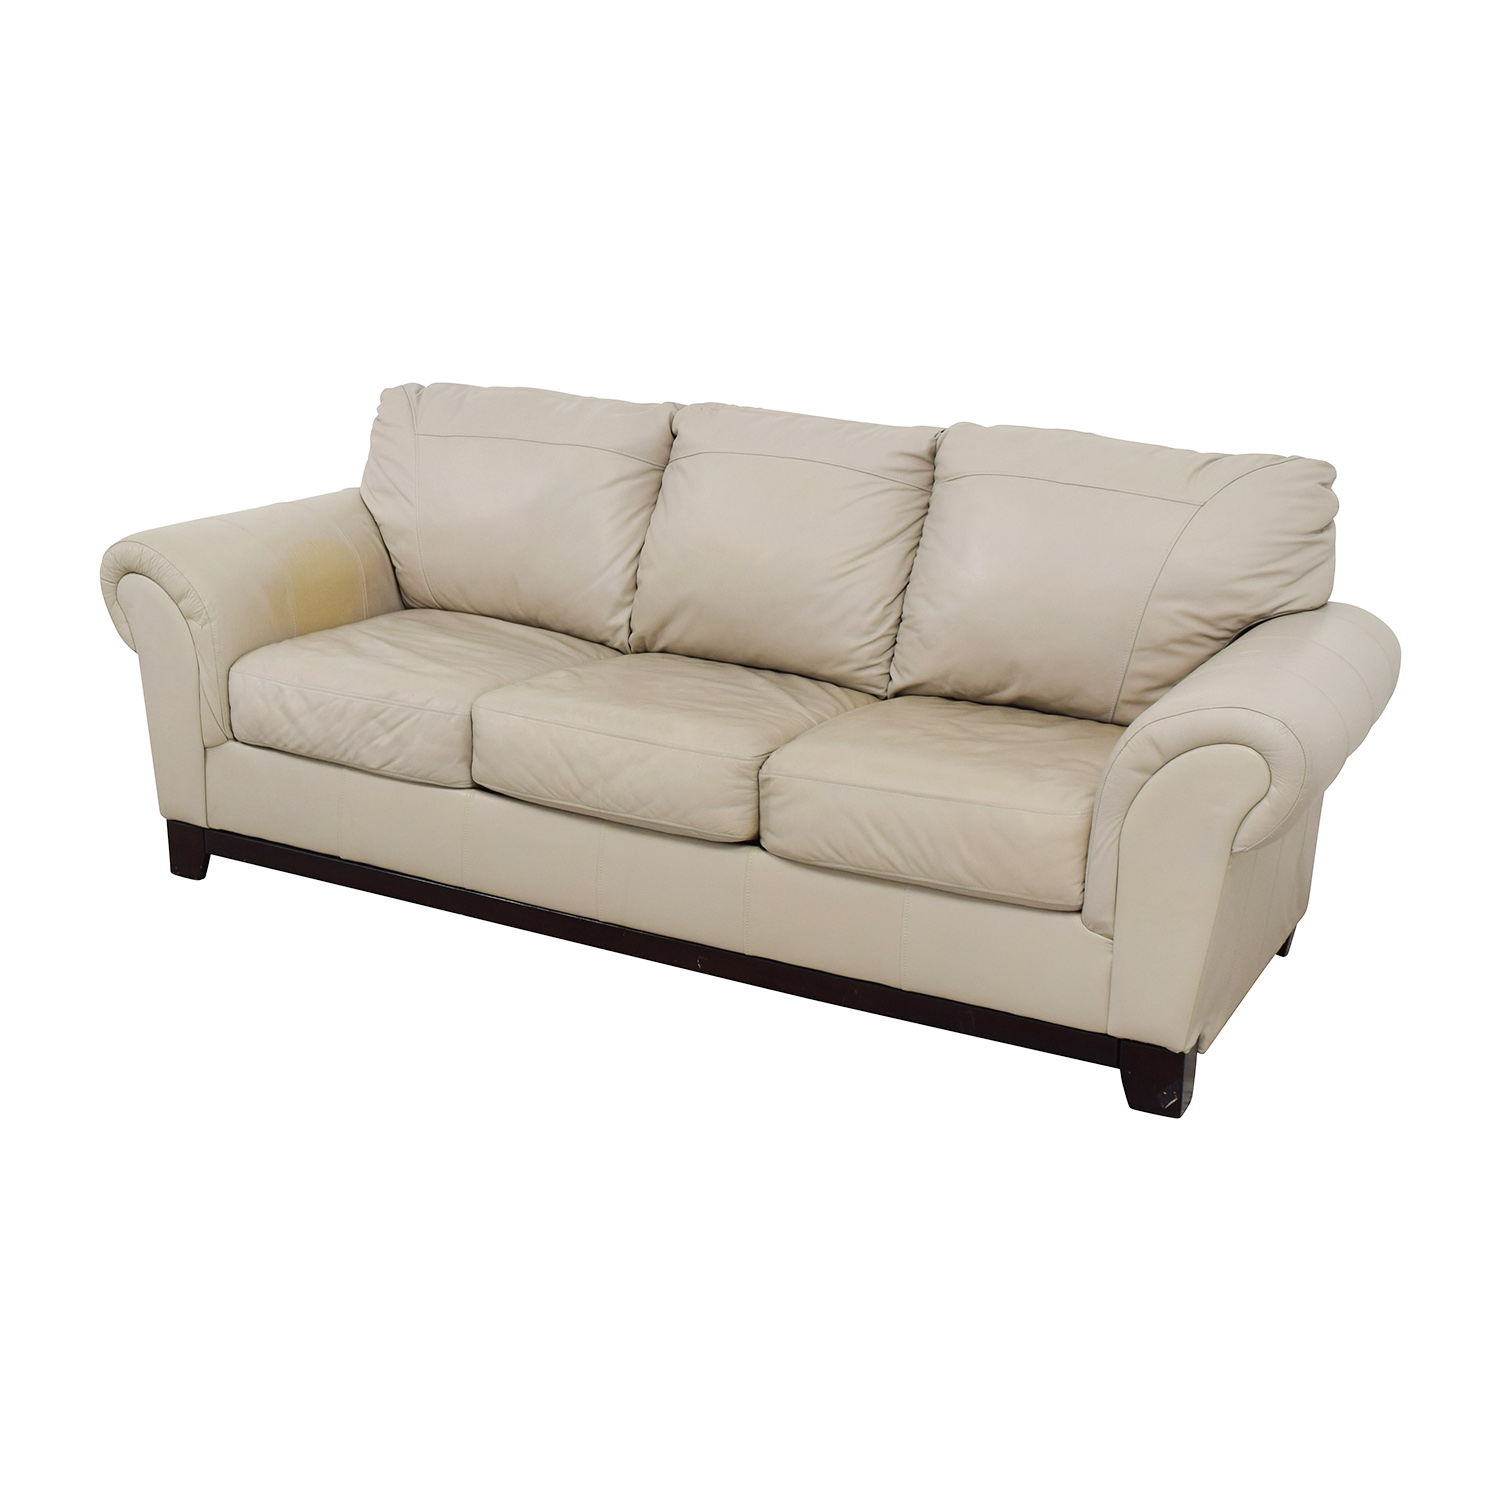 90 Off Taupe Leather Couch Sofas